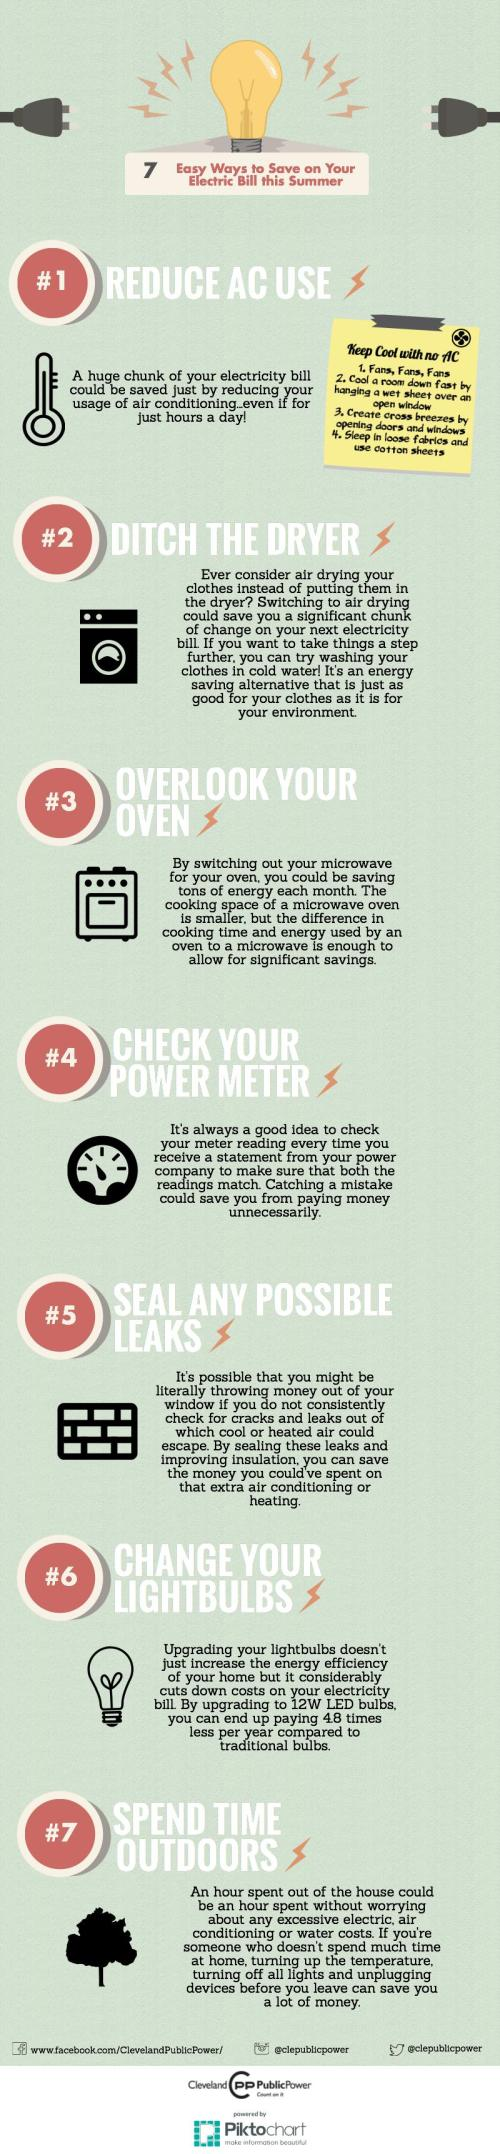 7-ways-to-save-on-your-electricity-bill-this-summer-2